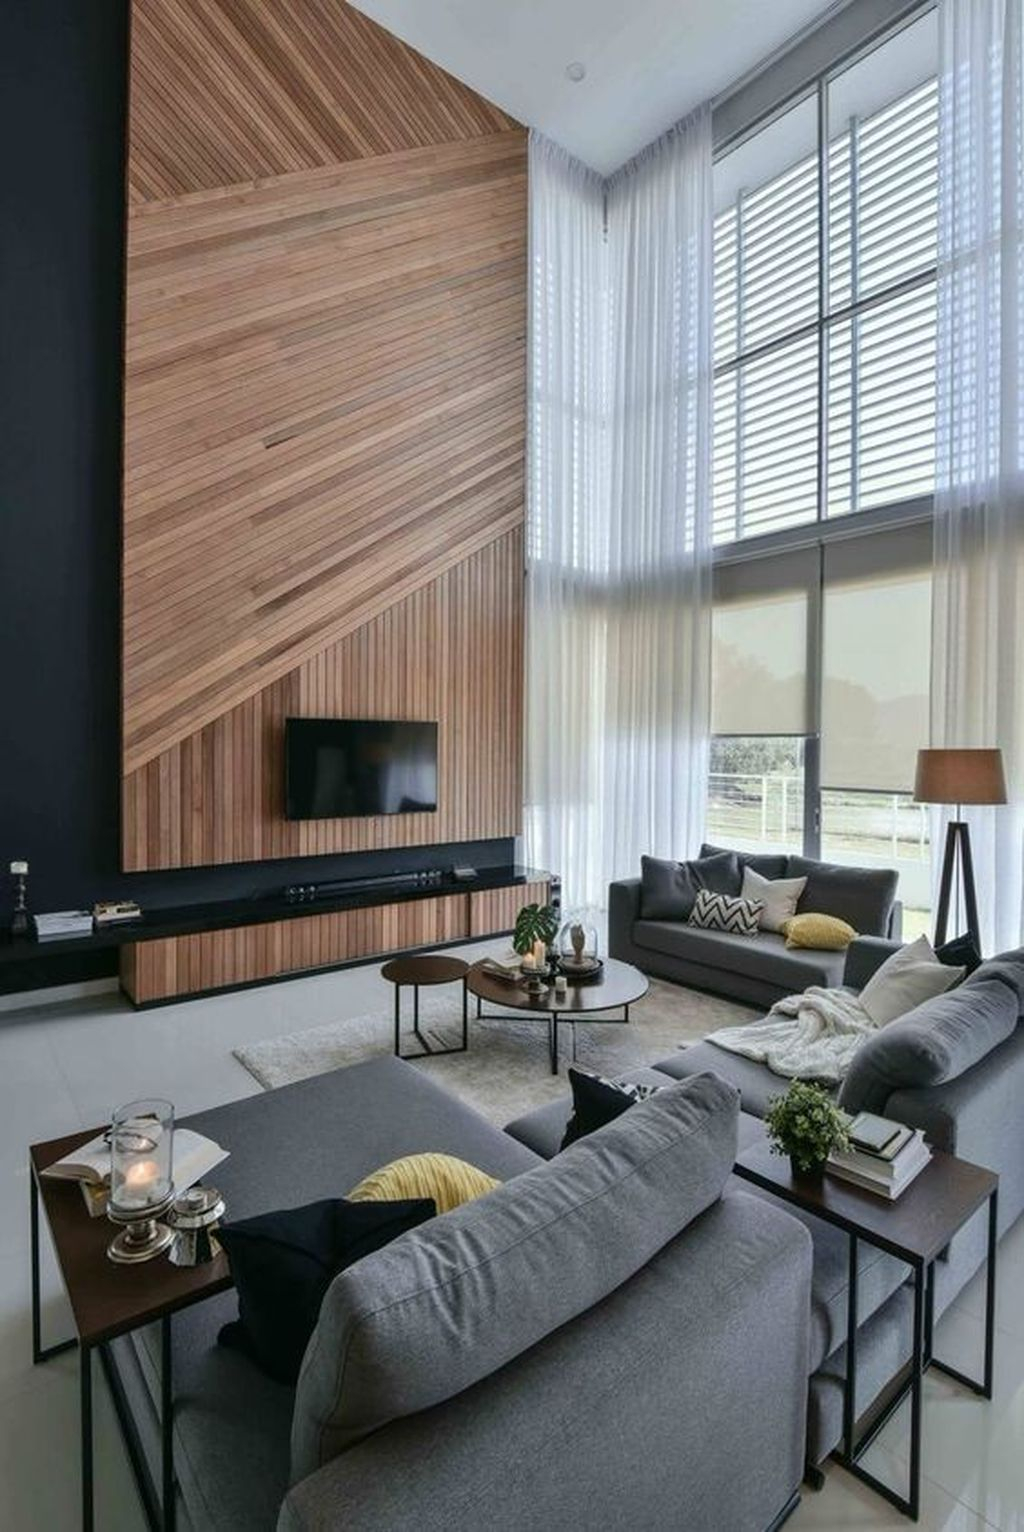 Marvelous Interior Design Ideas For Home That Looks Cool 32